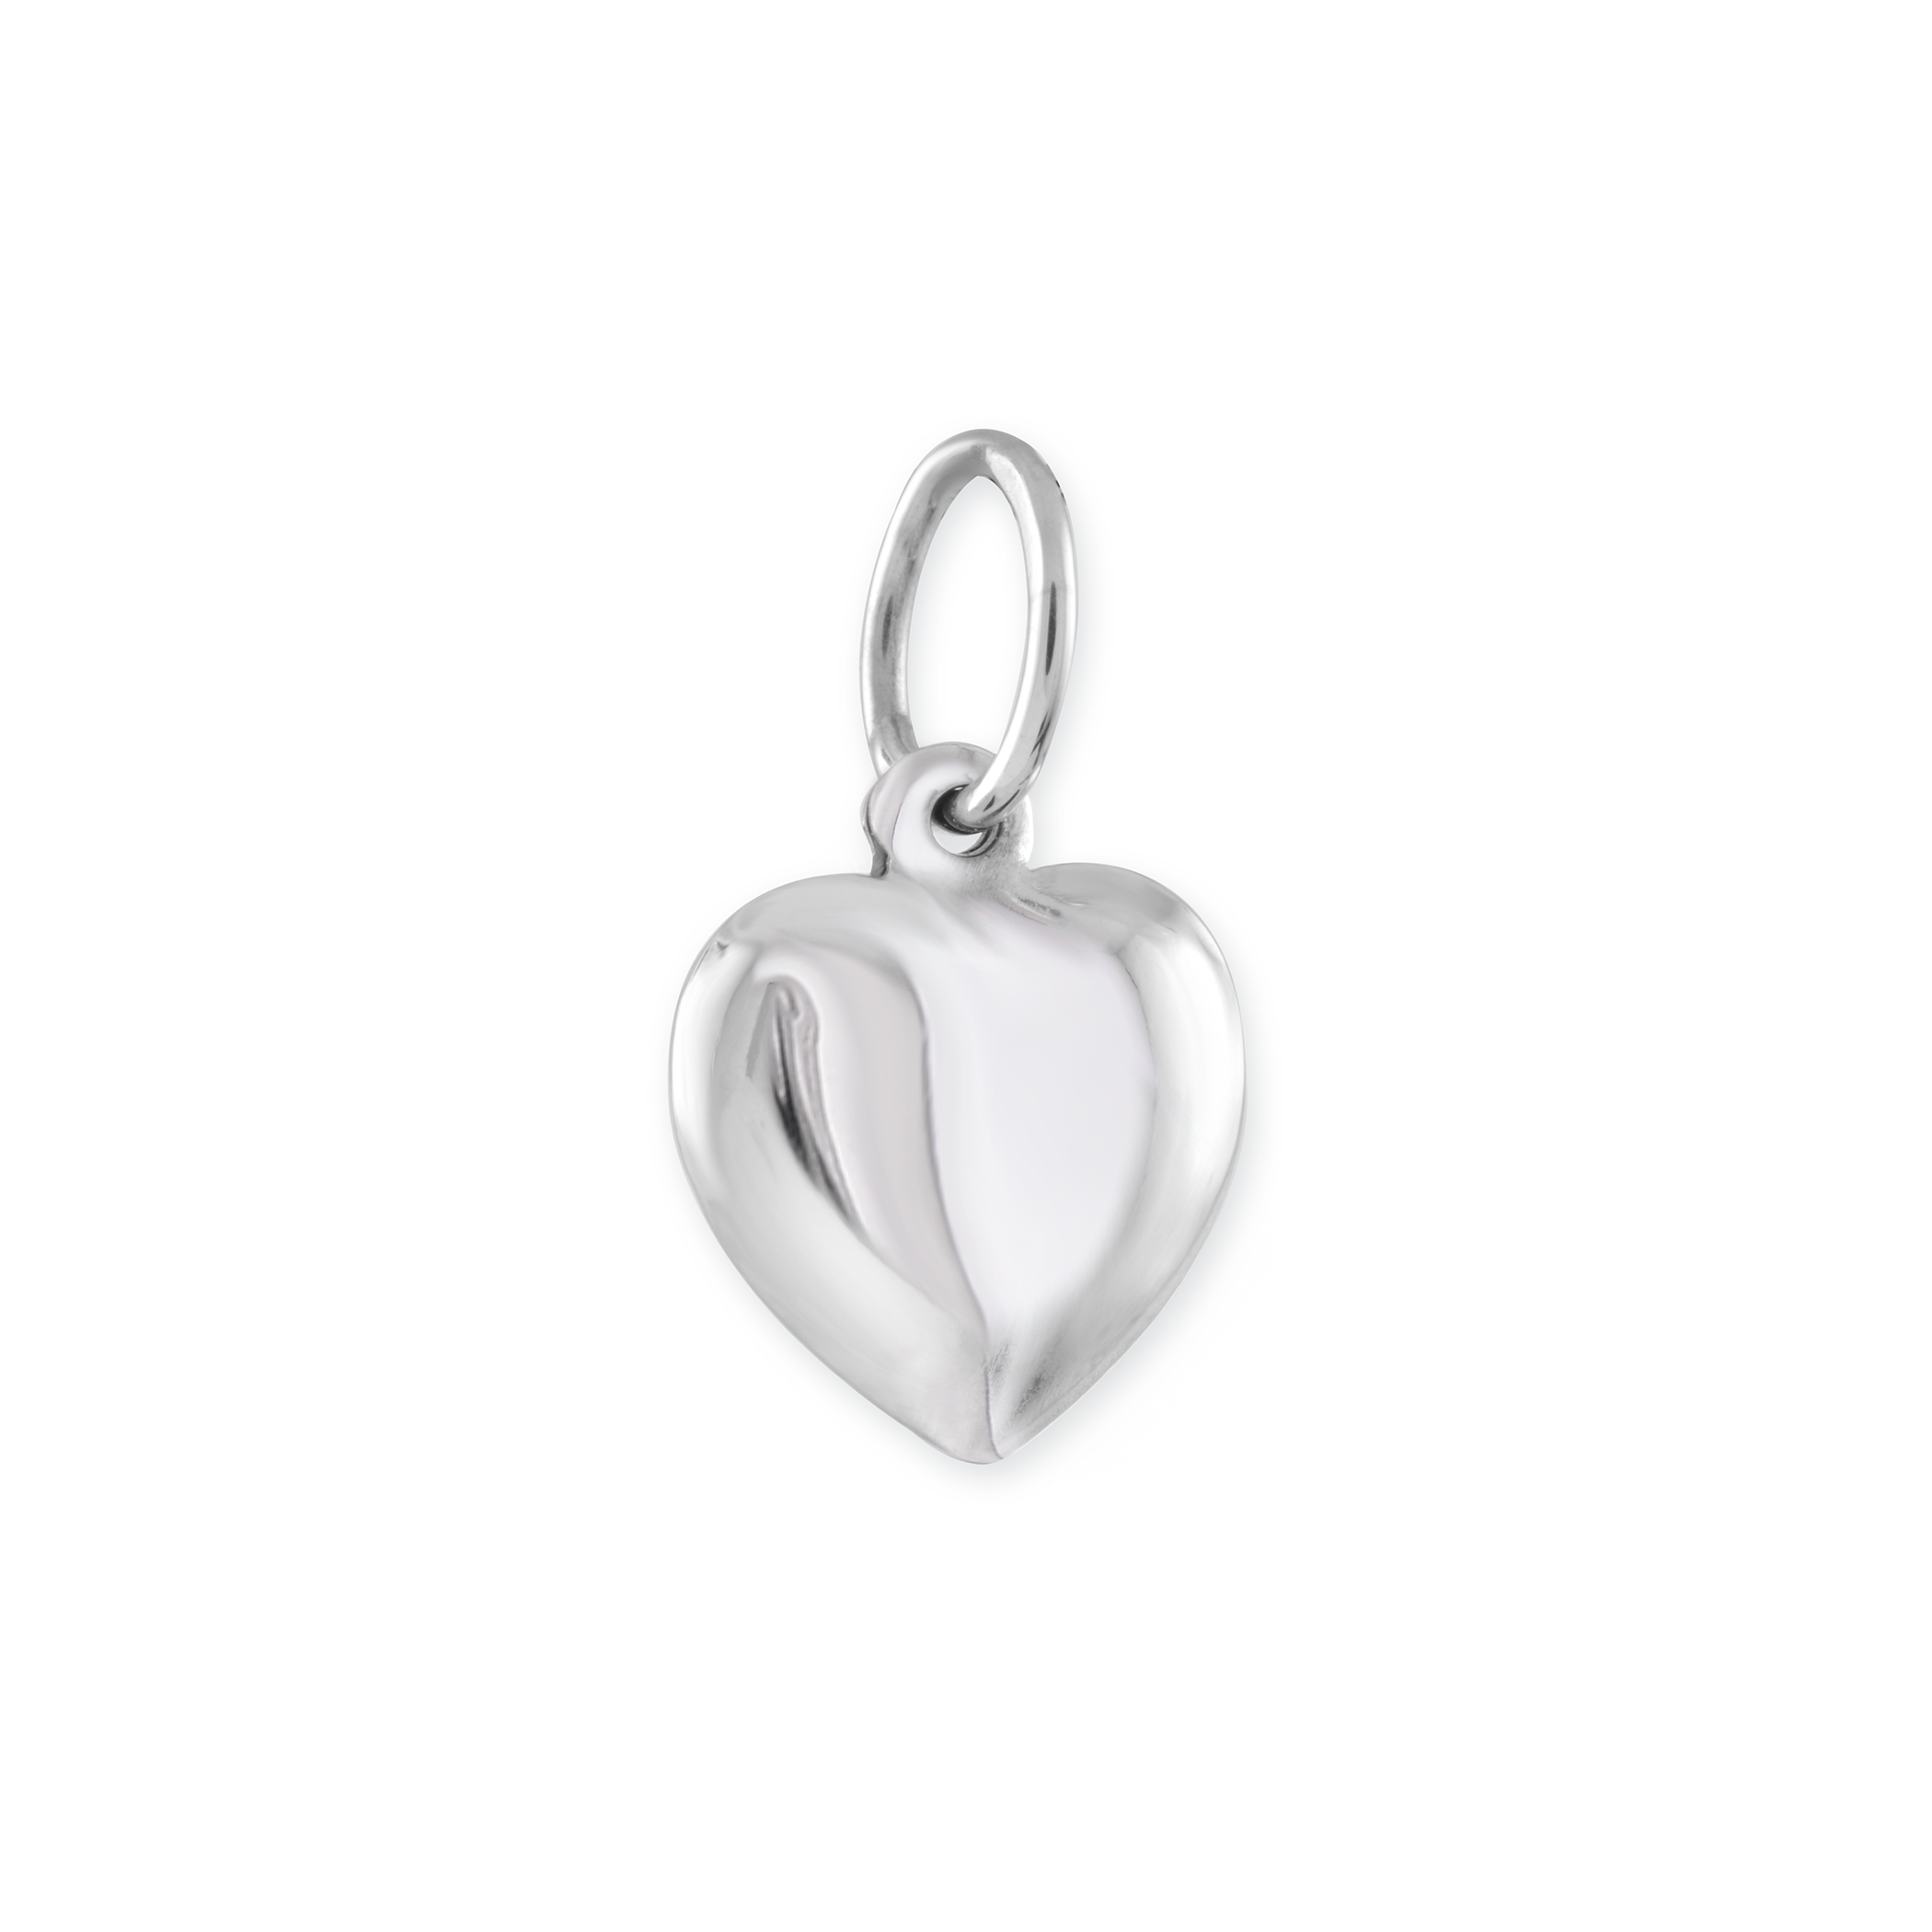 Heart pendant for children - 10K white Gold